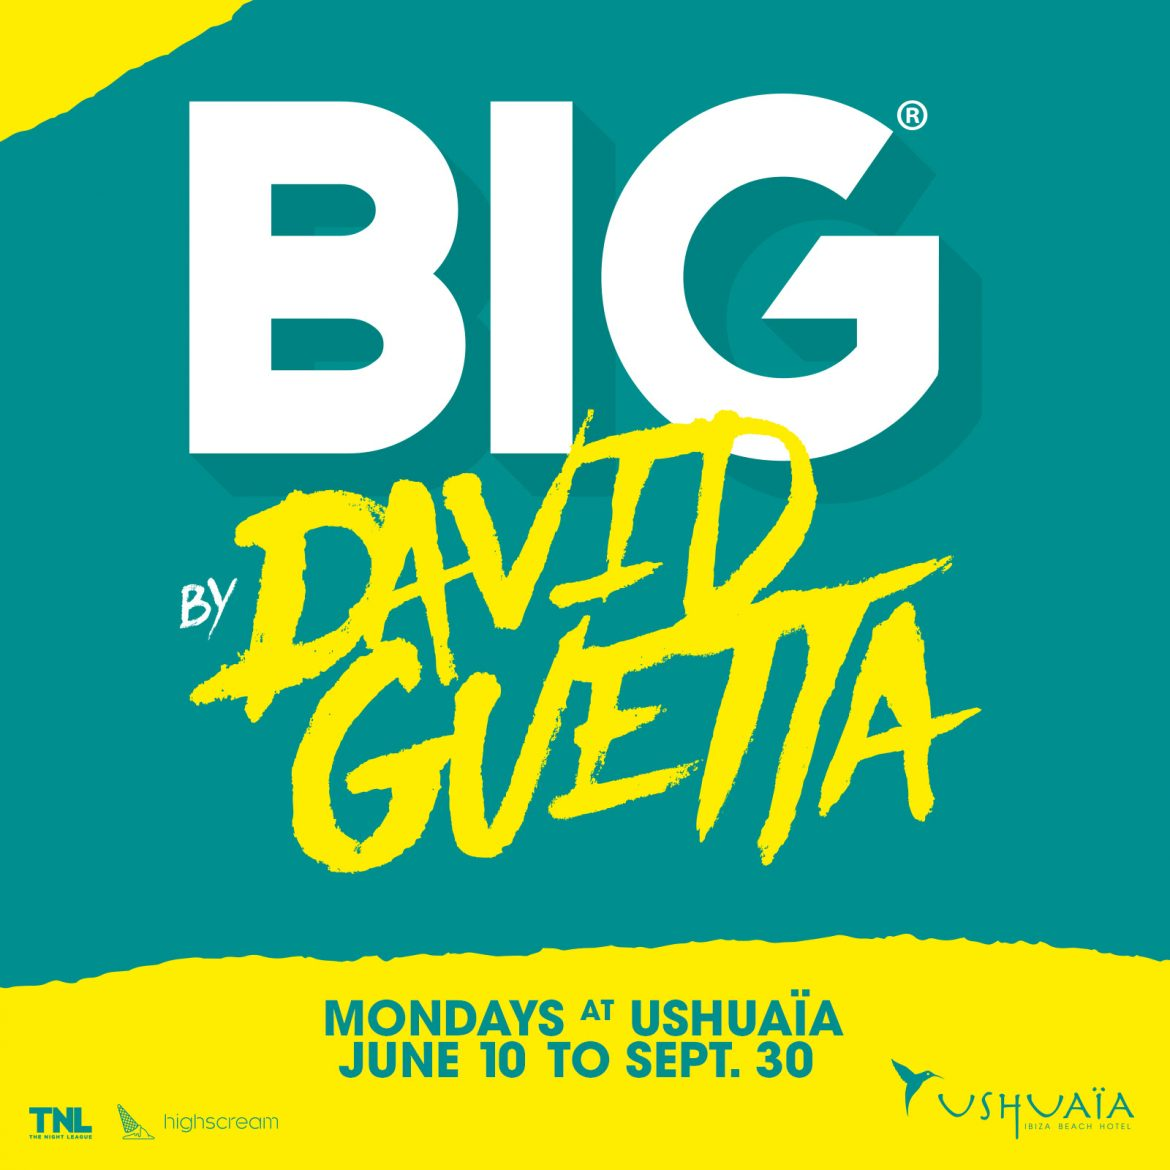 BIG AT USHUAÏA EVERY MONDAY